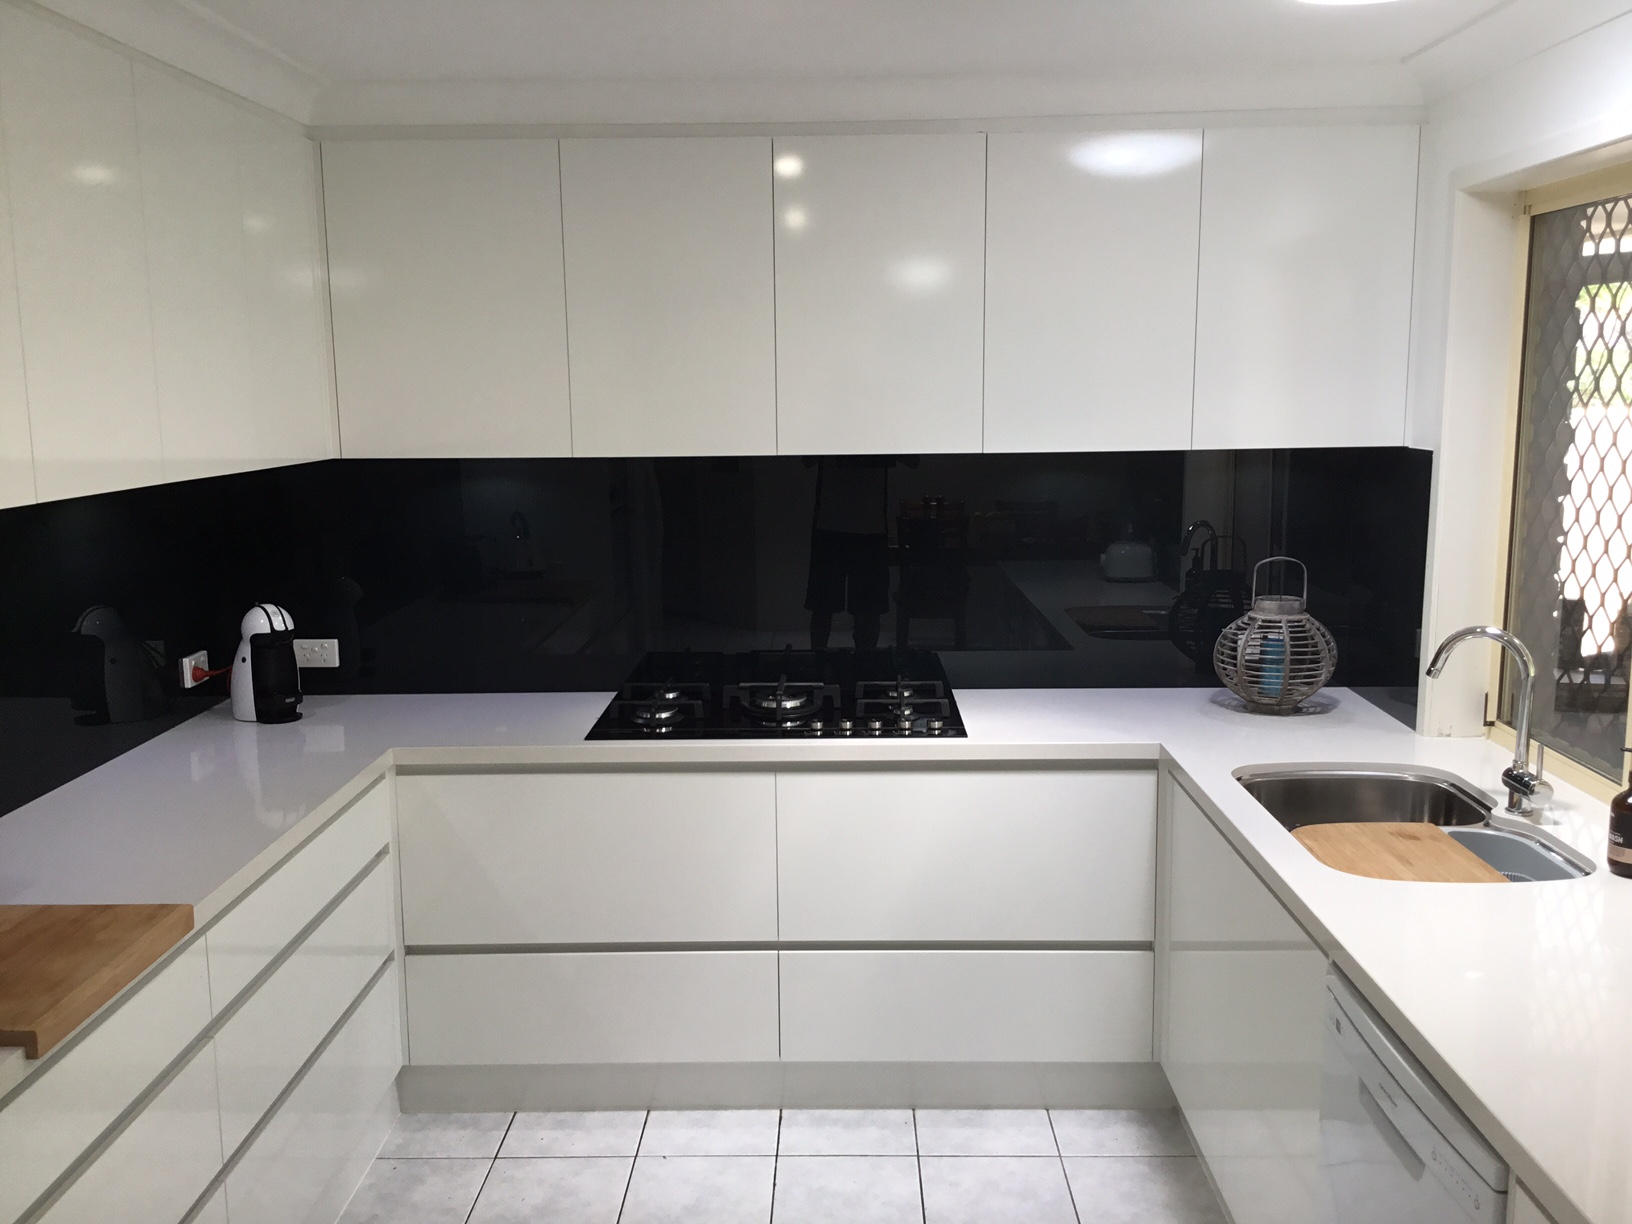 Kitchen Renovations - Gold Coast - Kitchen Brokers Queensland - Susan & Shane